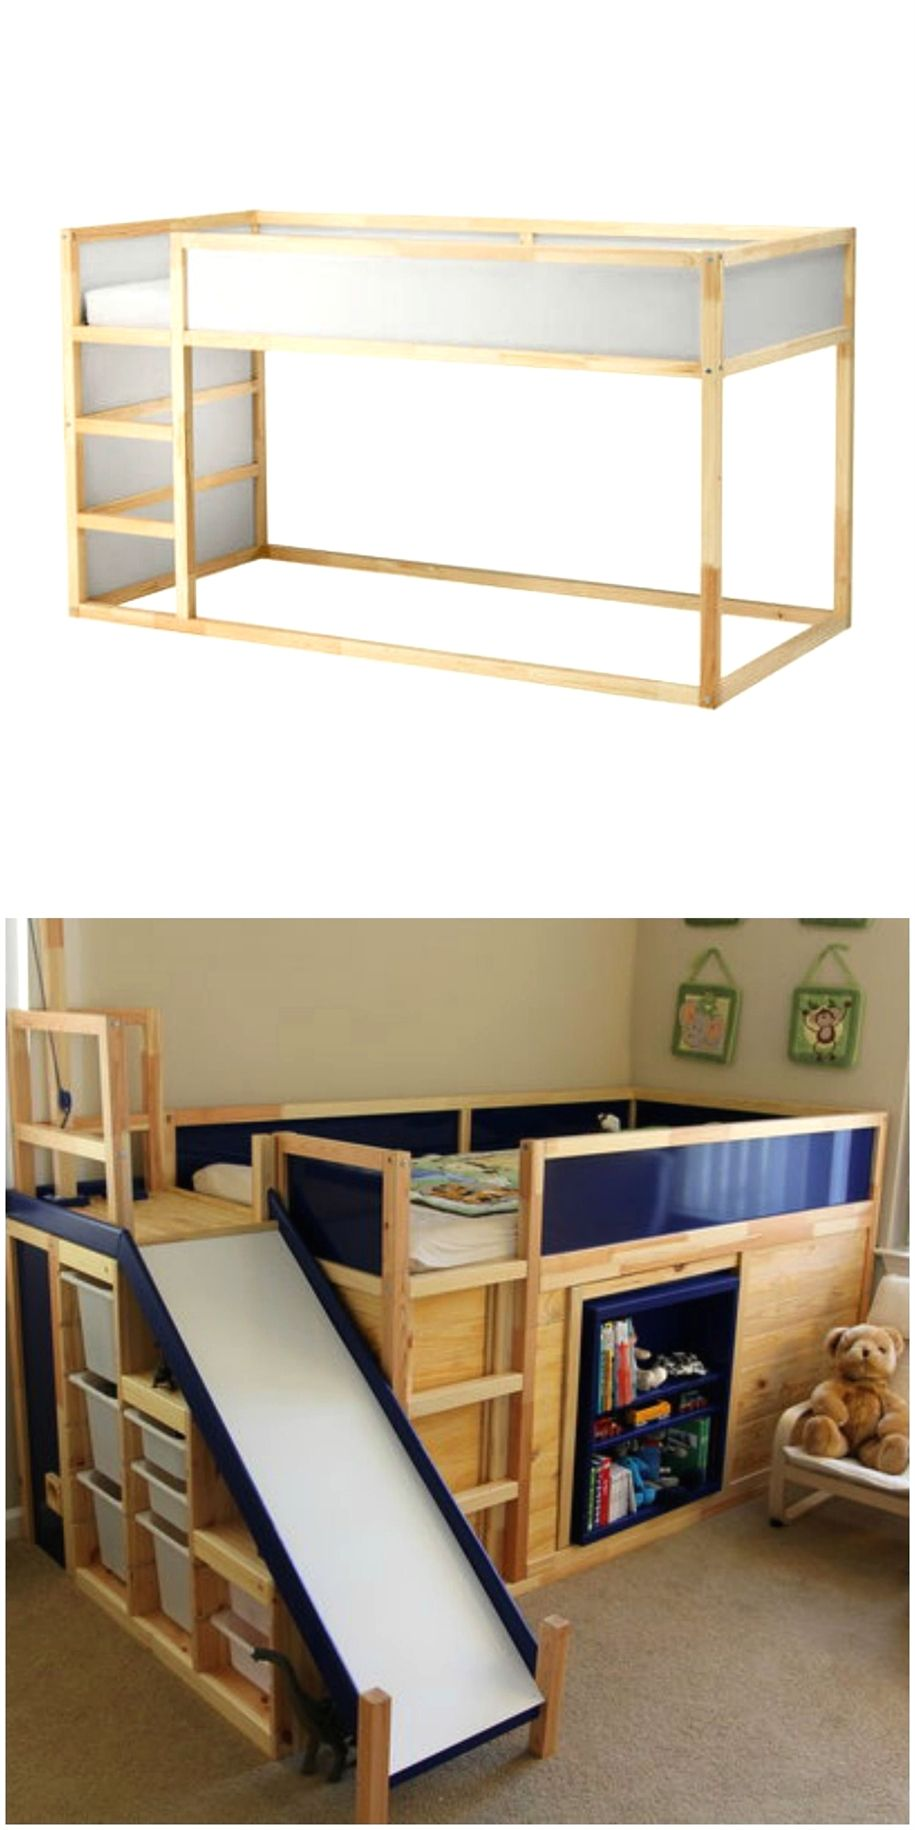 These 37 Ikea Product Hacks Are So Brilliant You Ll Want To Try Them Asap Small Kids Room Ikea Bed Ikea Loft Bed